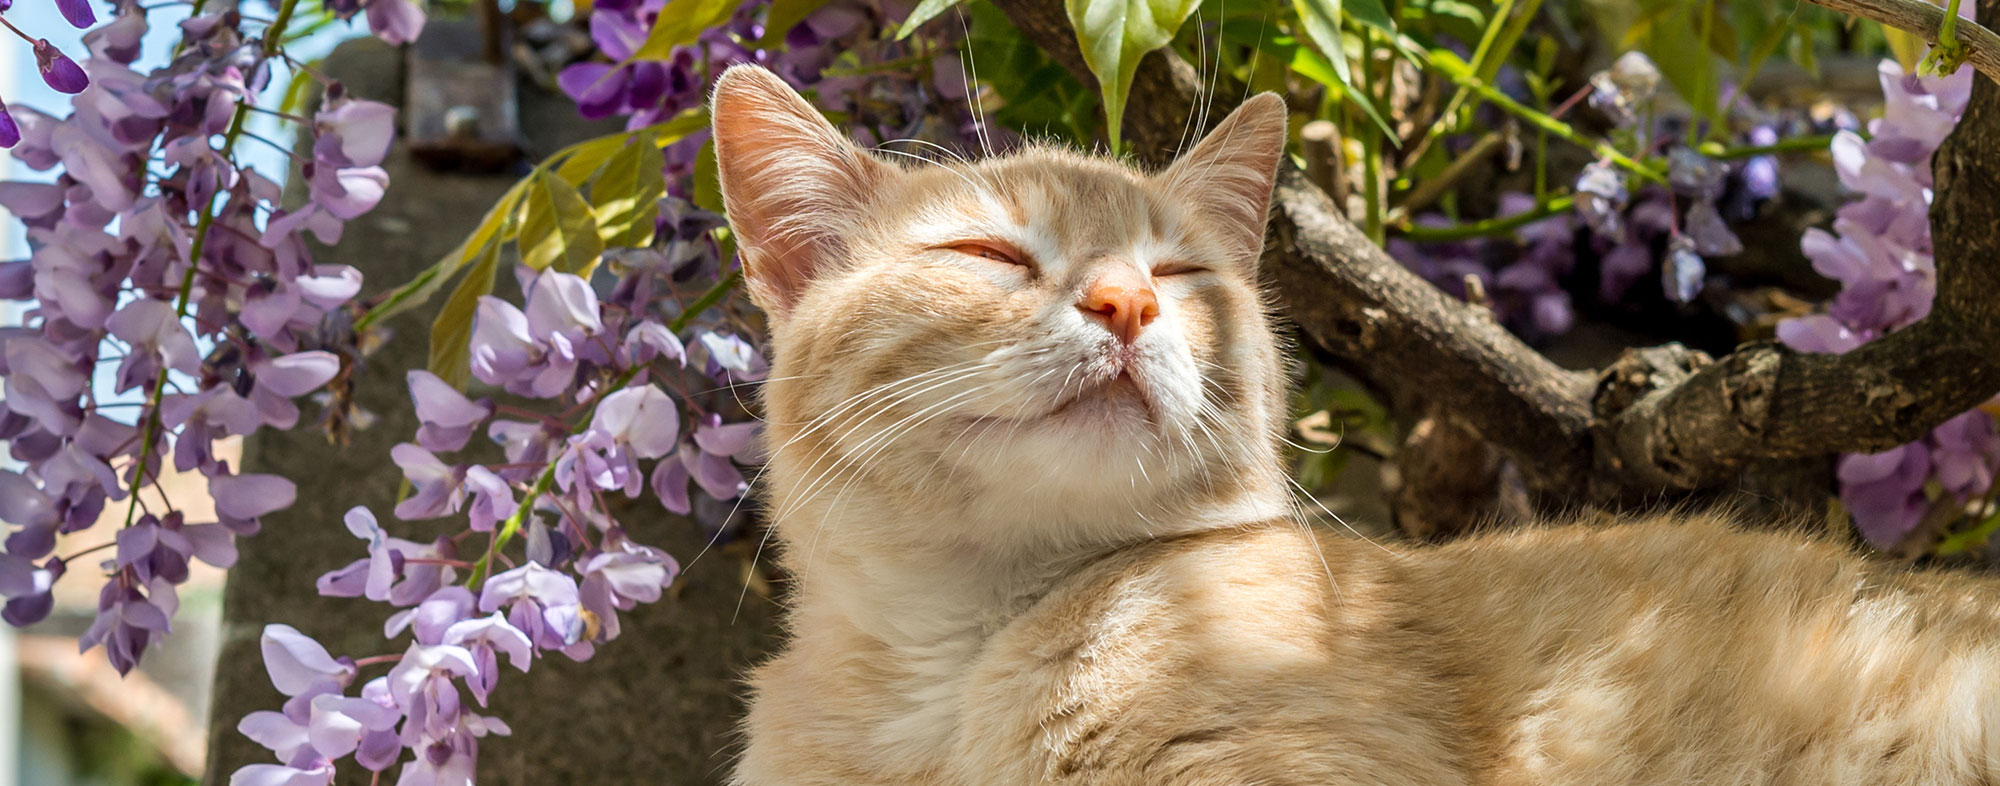 Your cat will gravitate to flowers like catmint when exploring outside